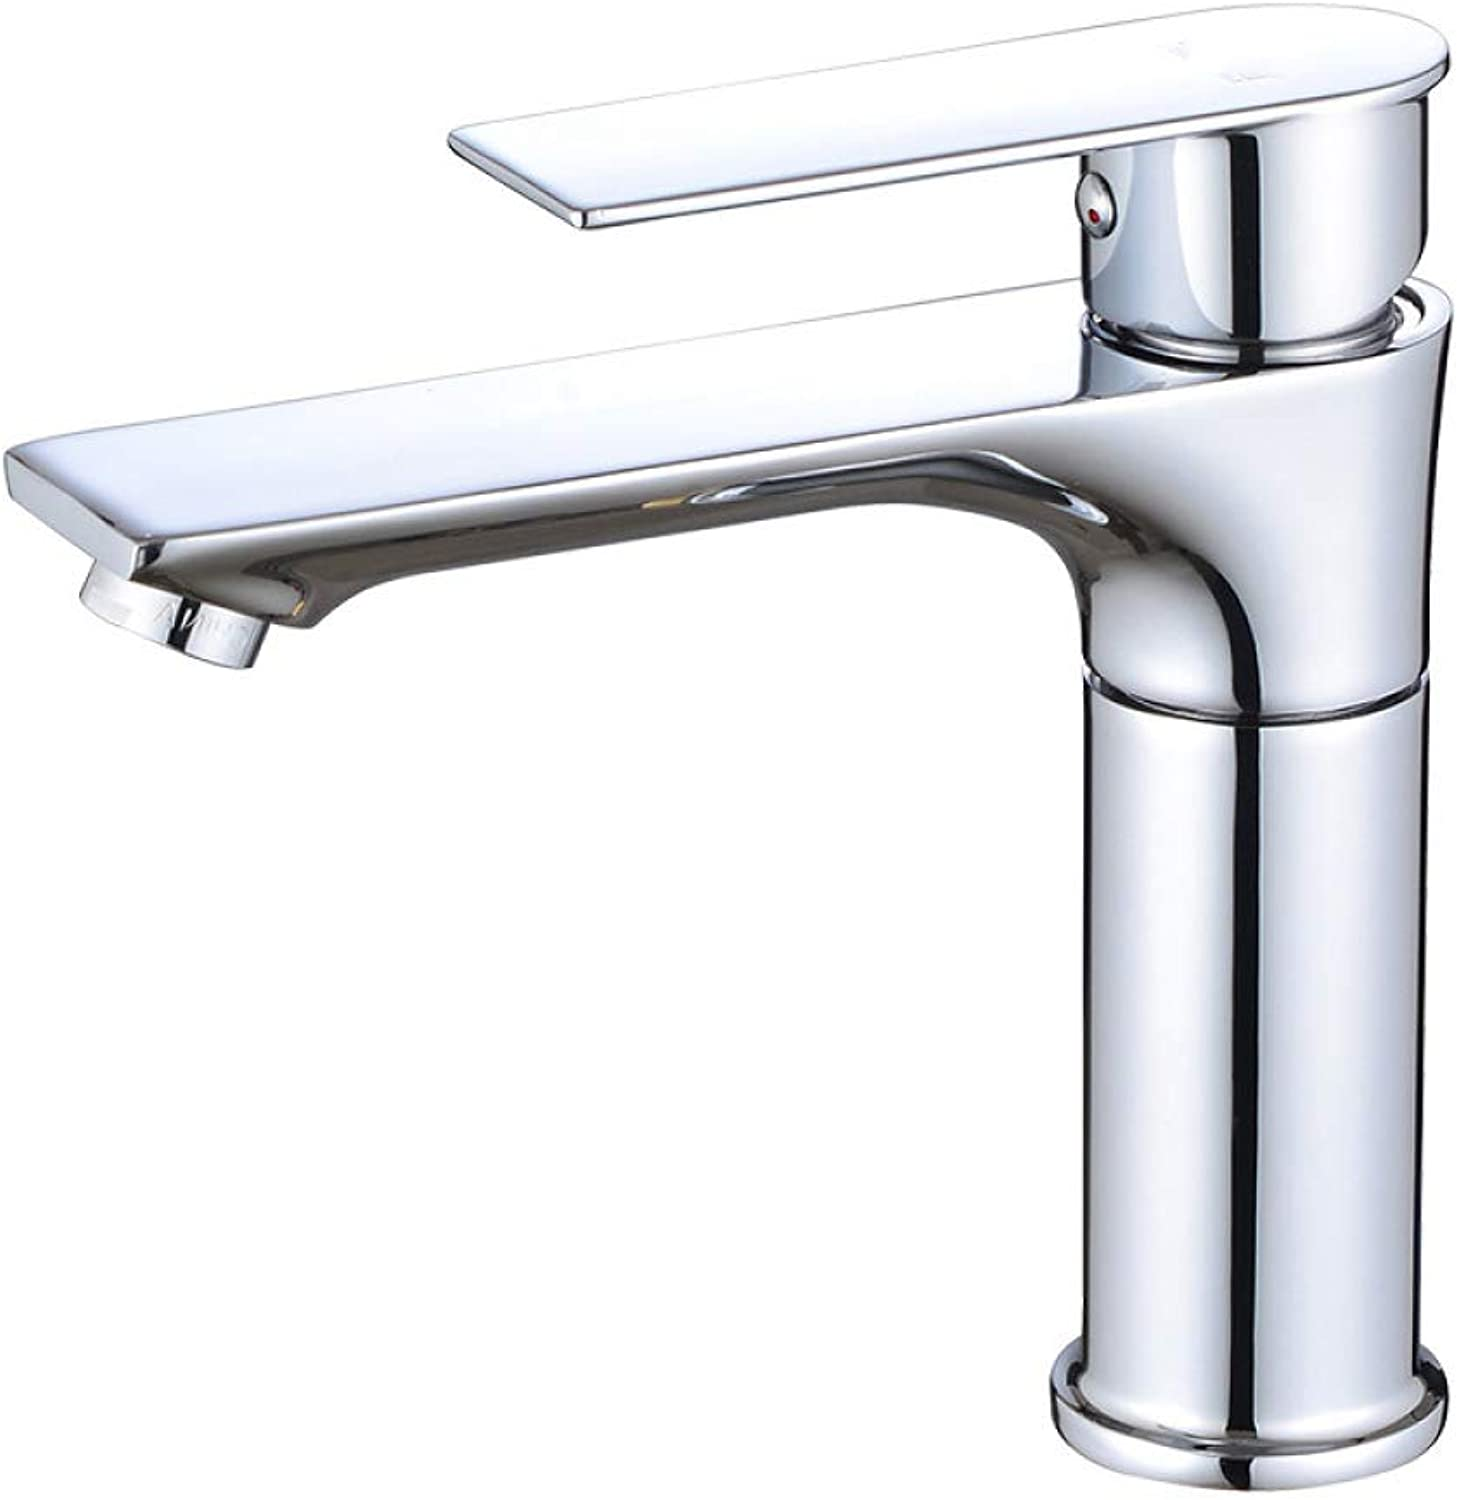 Glz Tap Faucet redation Lifting hot and Cold Faucet Basin Faucet Basin Faucet